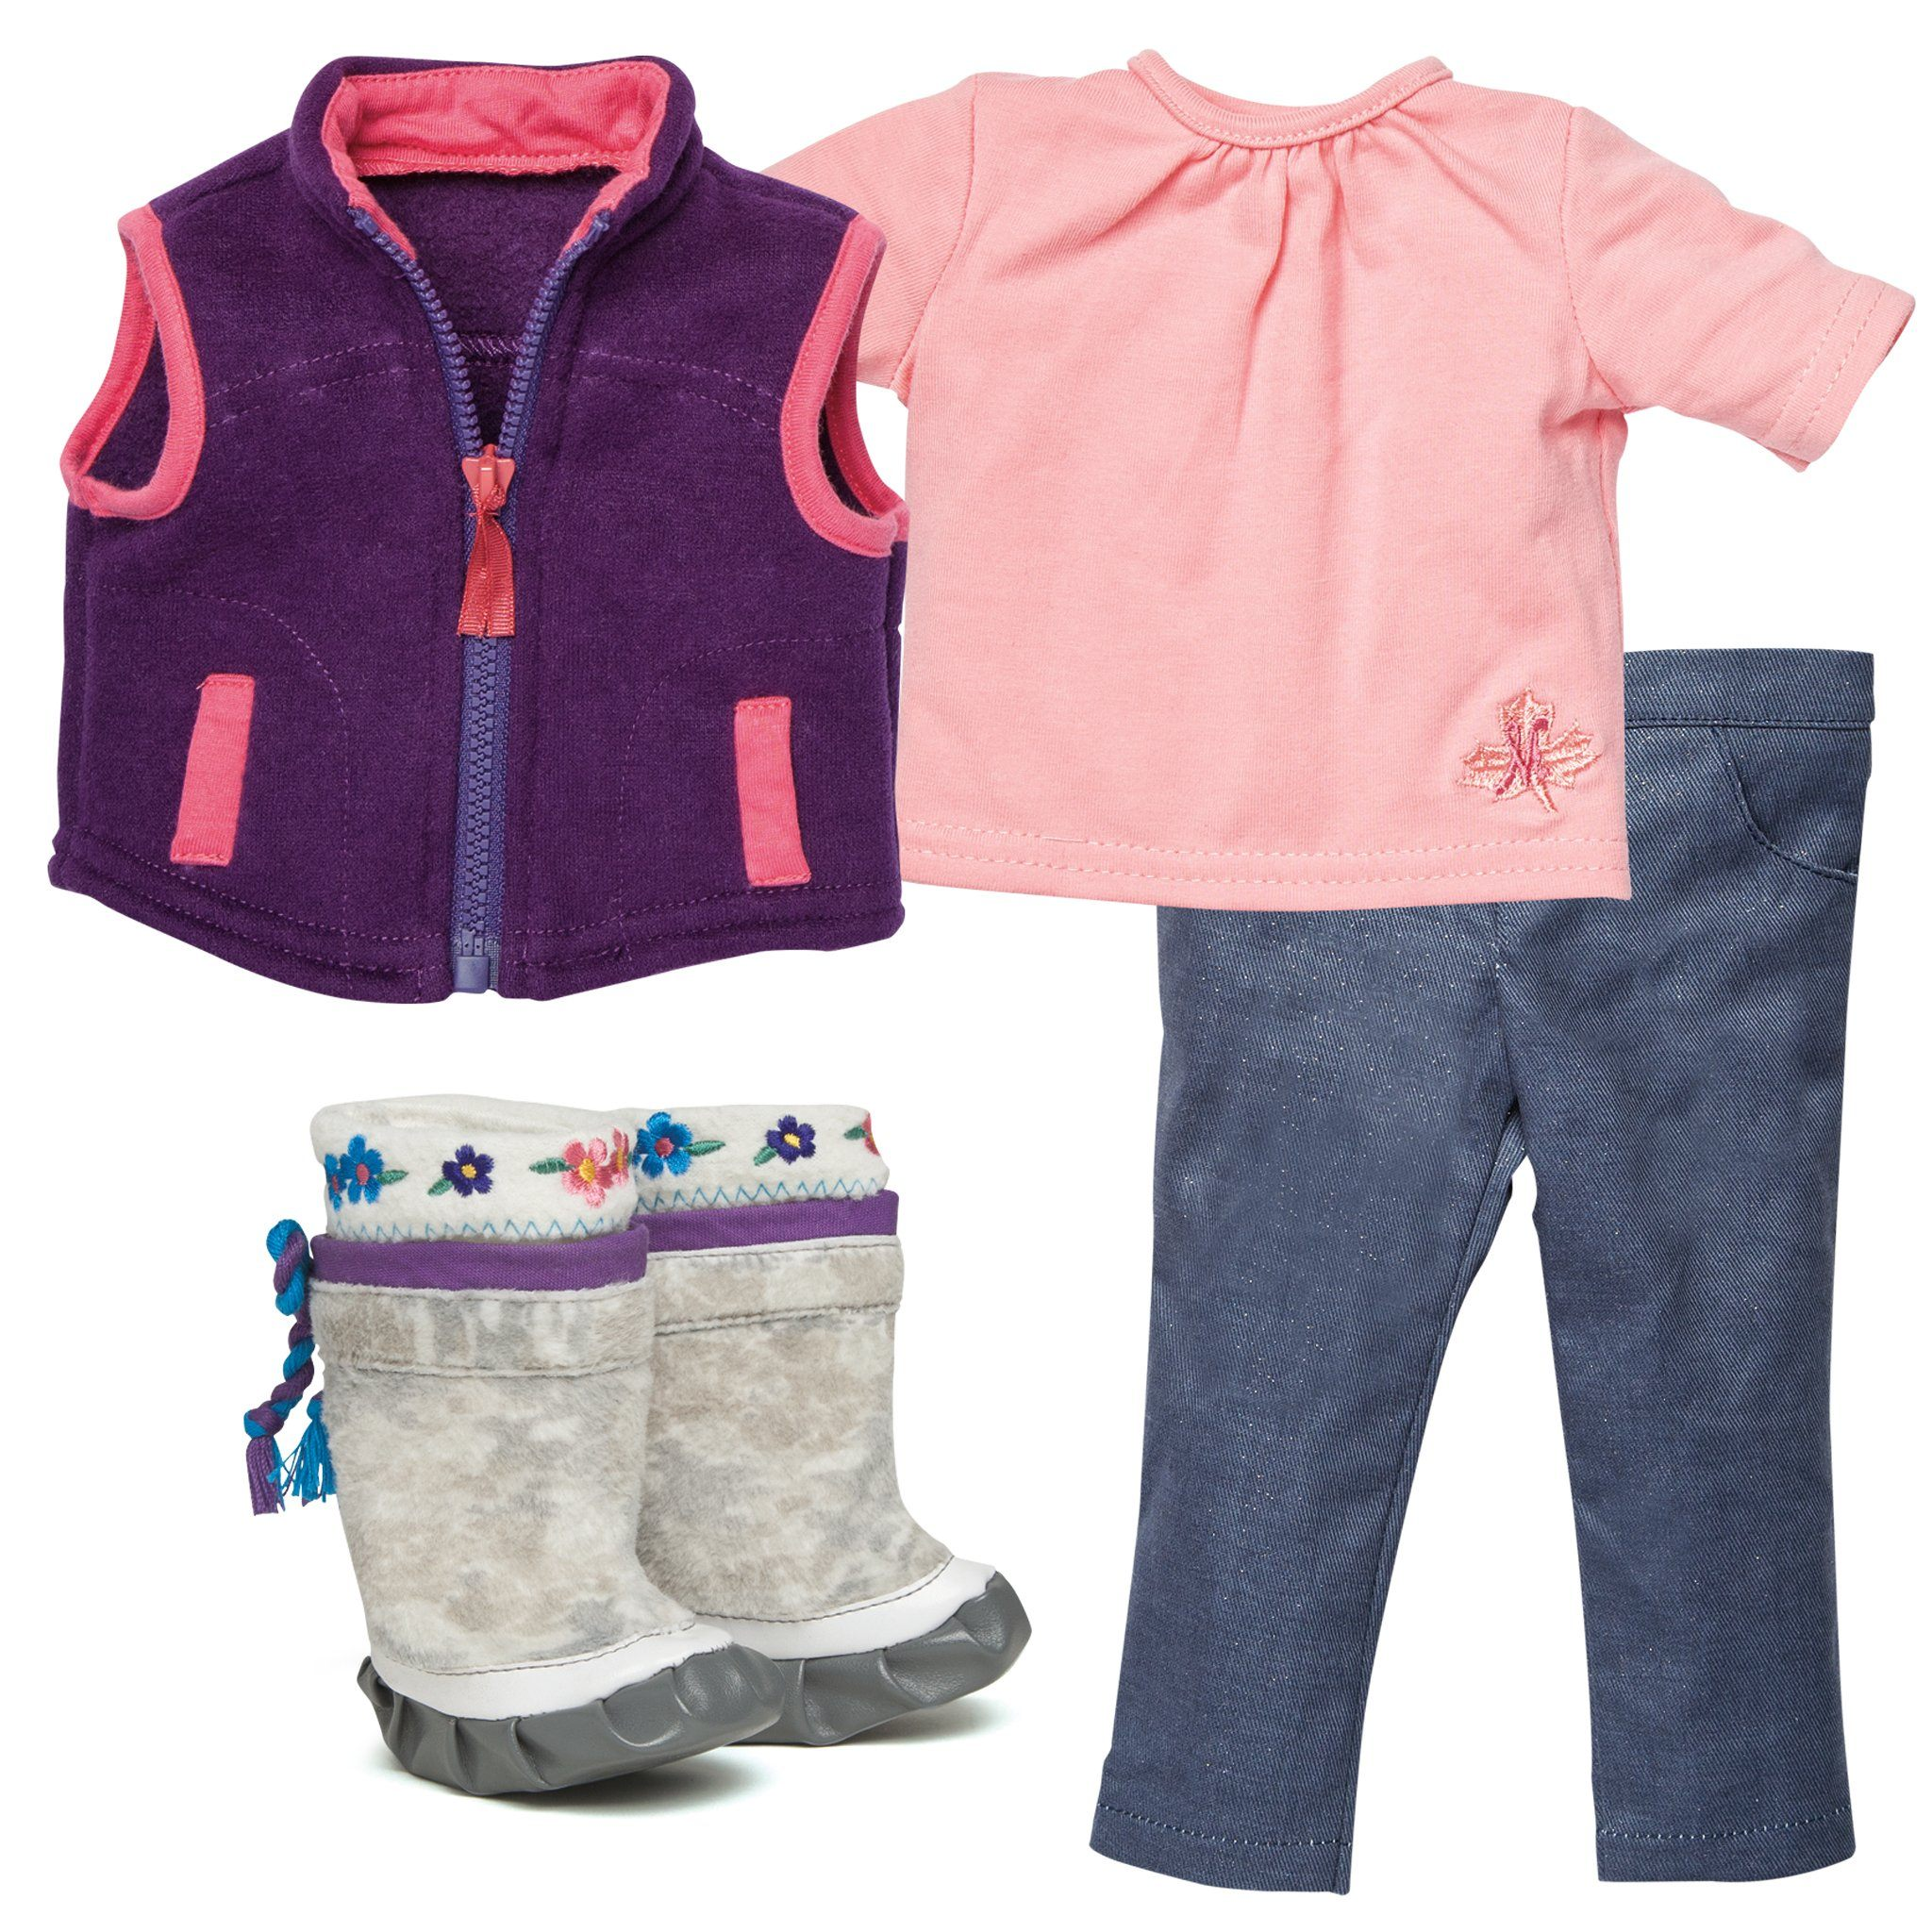 Maplelea doll Saila starter outfit sparkly jeans, purple fleece vest, pink t-shirt and kamiik boots. KS1.